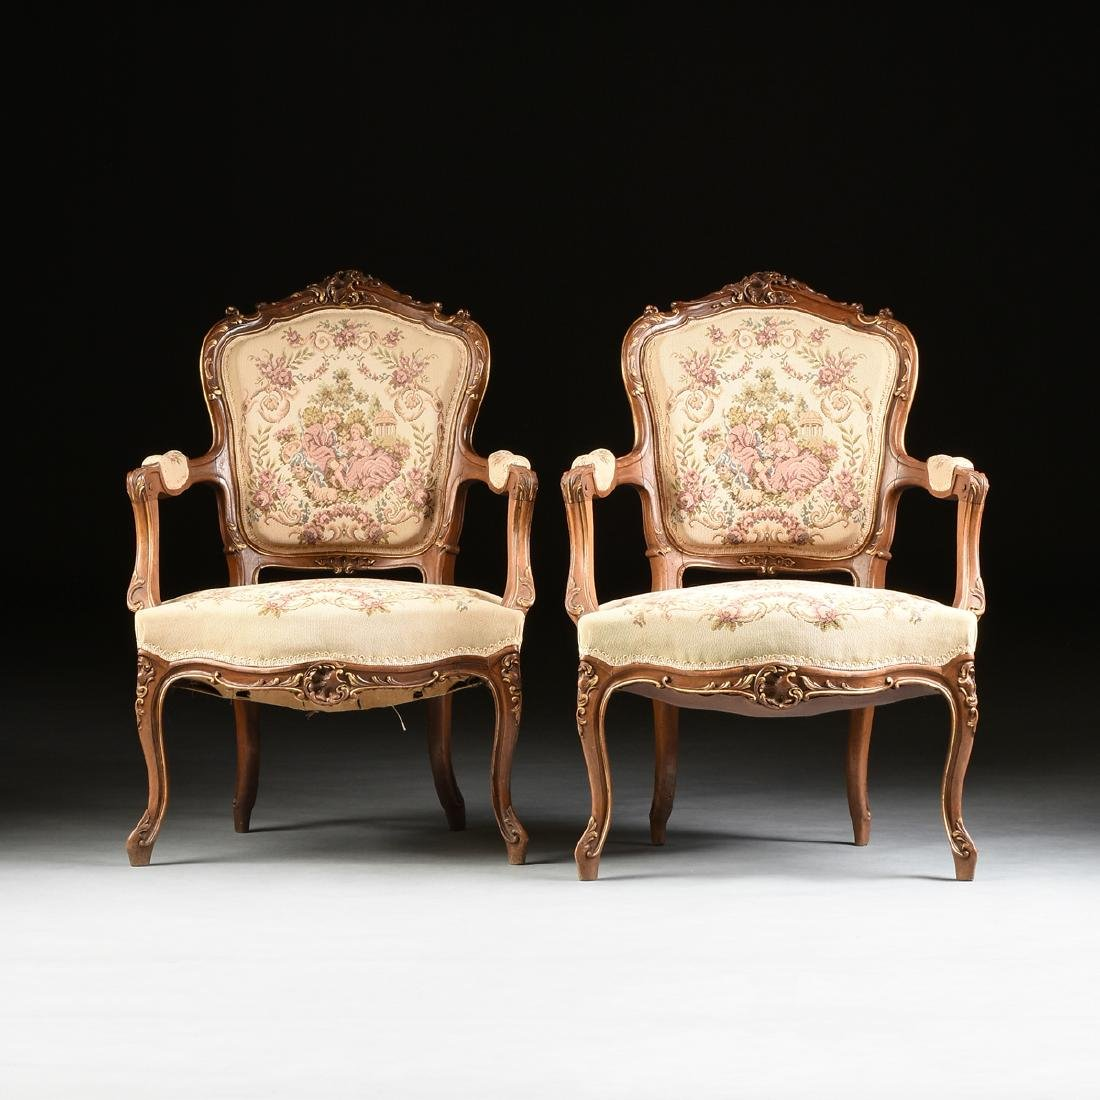 A PAIR OF LOUIS XV REVIVAL PARCEL GILT CARVED WALNUT